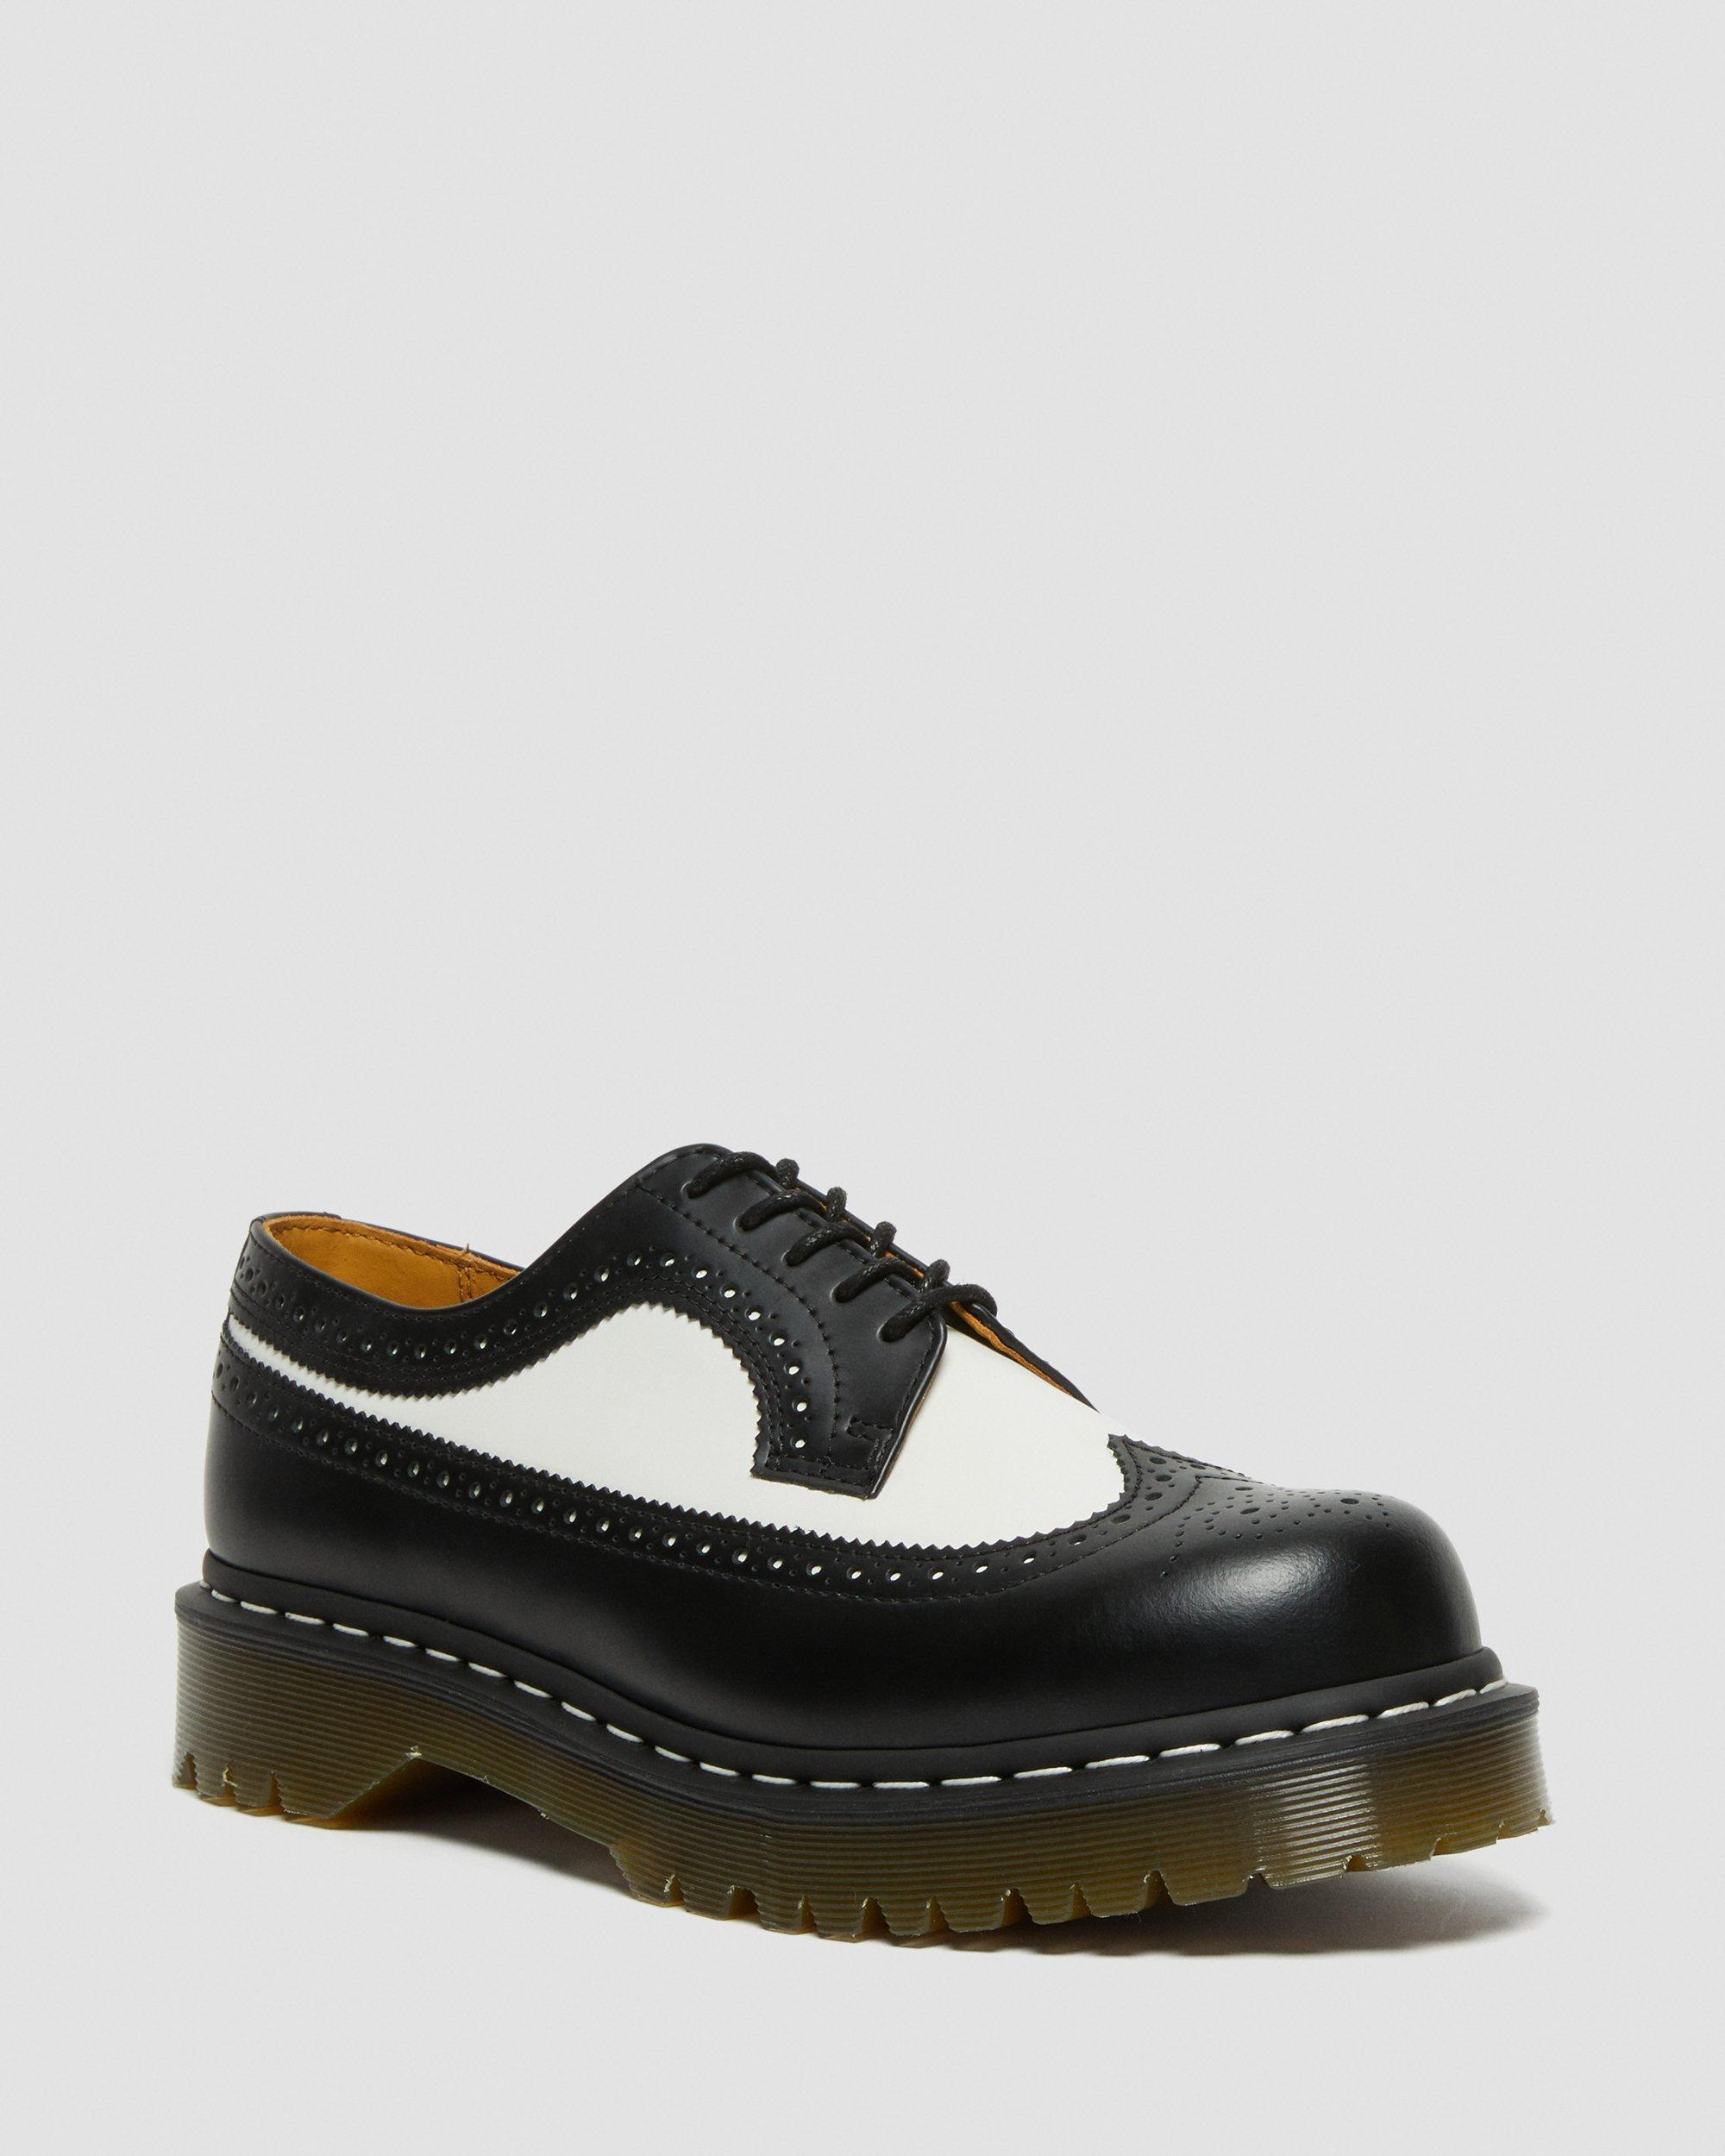 3989 BEX SMOOTH LEATHER BROGUE SHOES | Women's Boots, Shoes